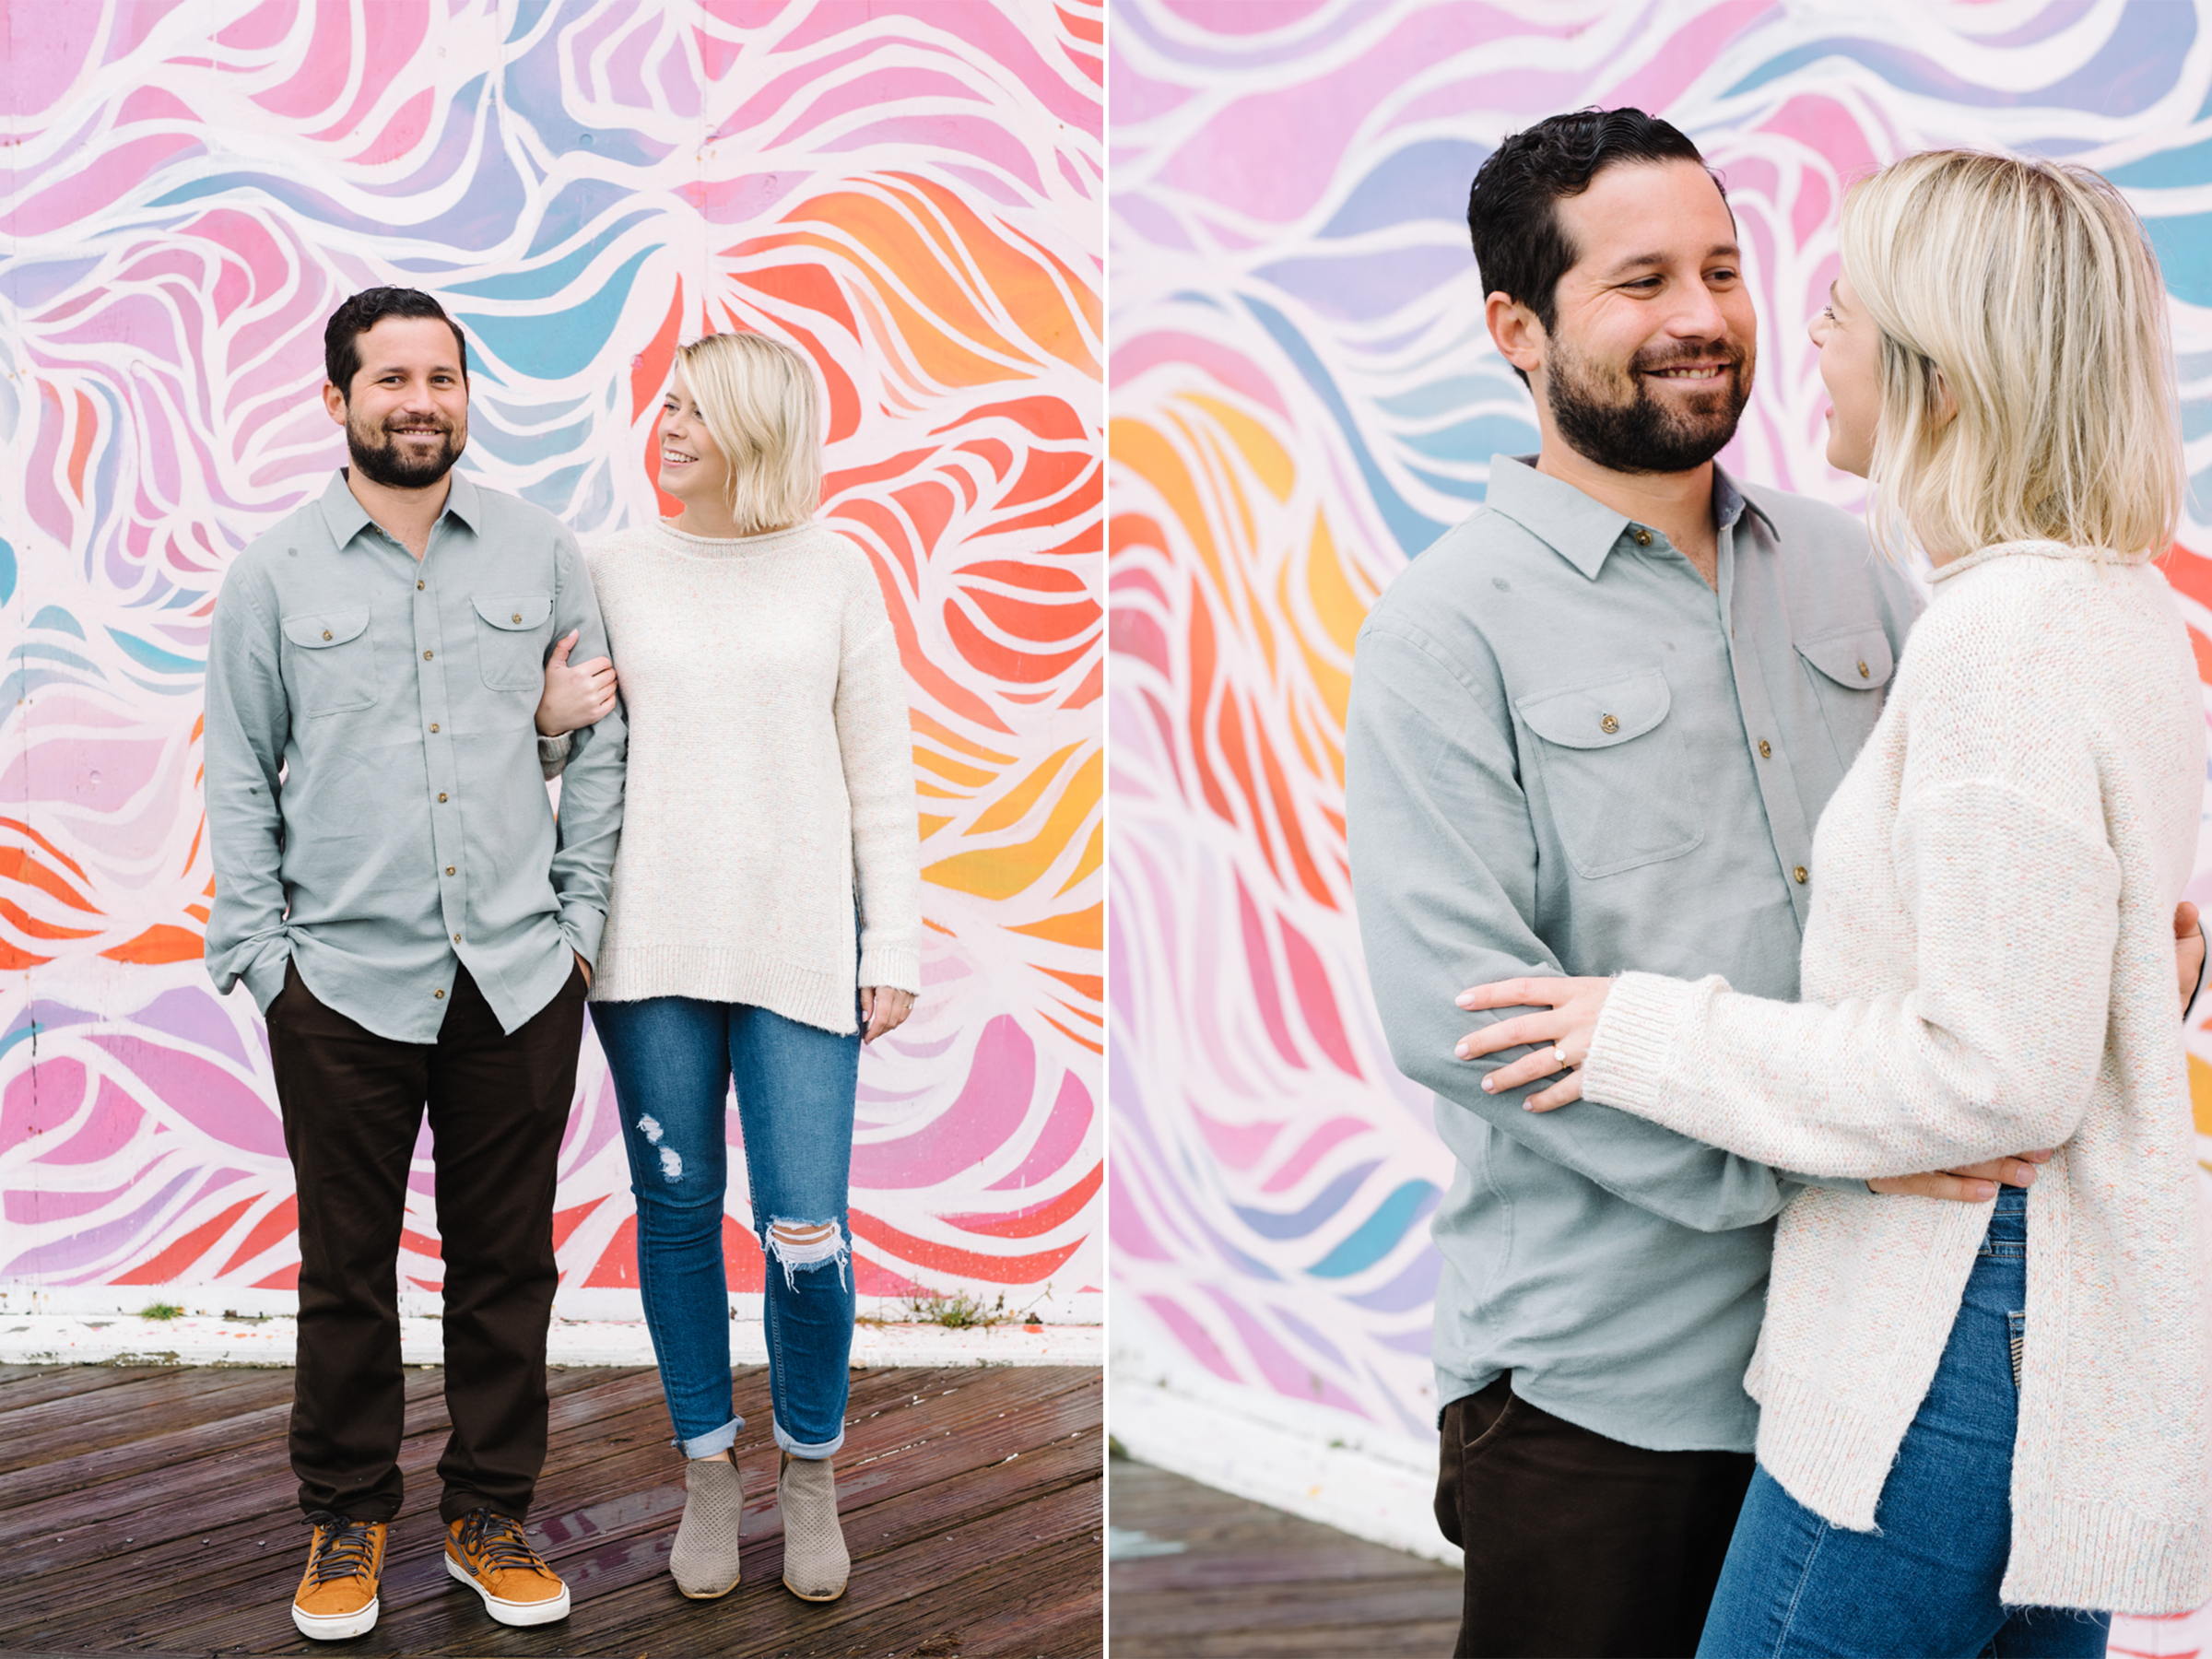 Asbury Park Engagement Session- Johanna+Danny-Colorful Graffiti Mural-New Jersey- Olivia Christina Photo-1.jpg